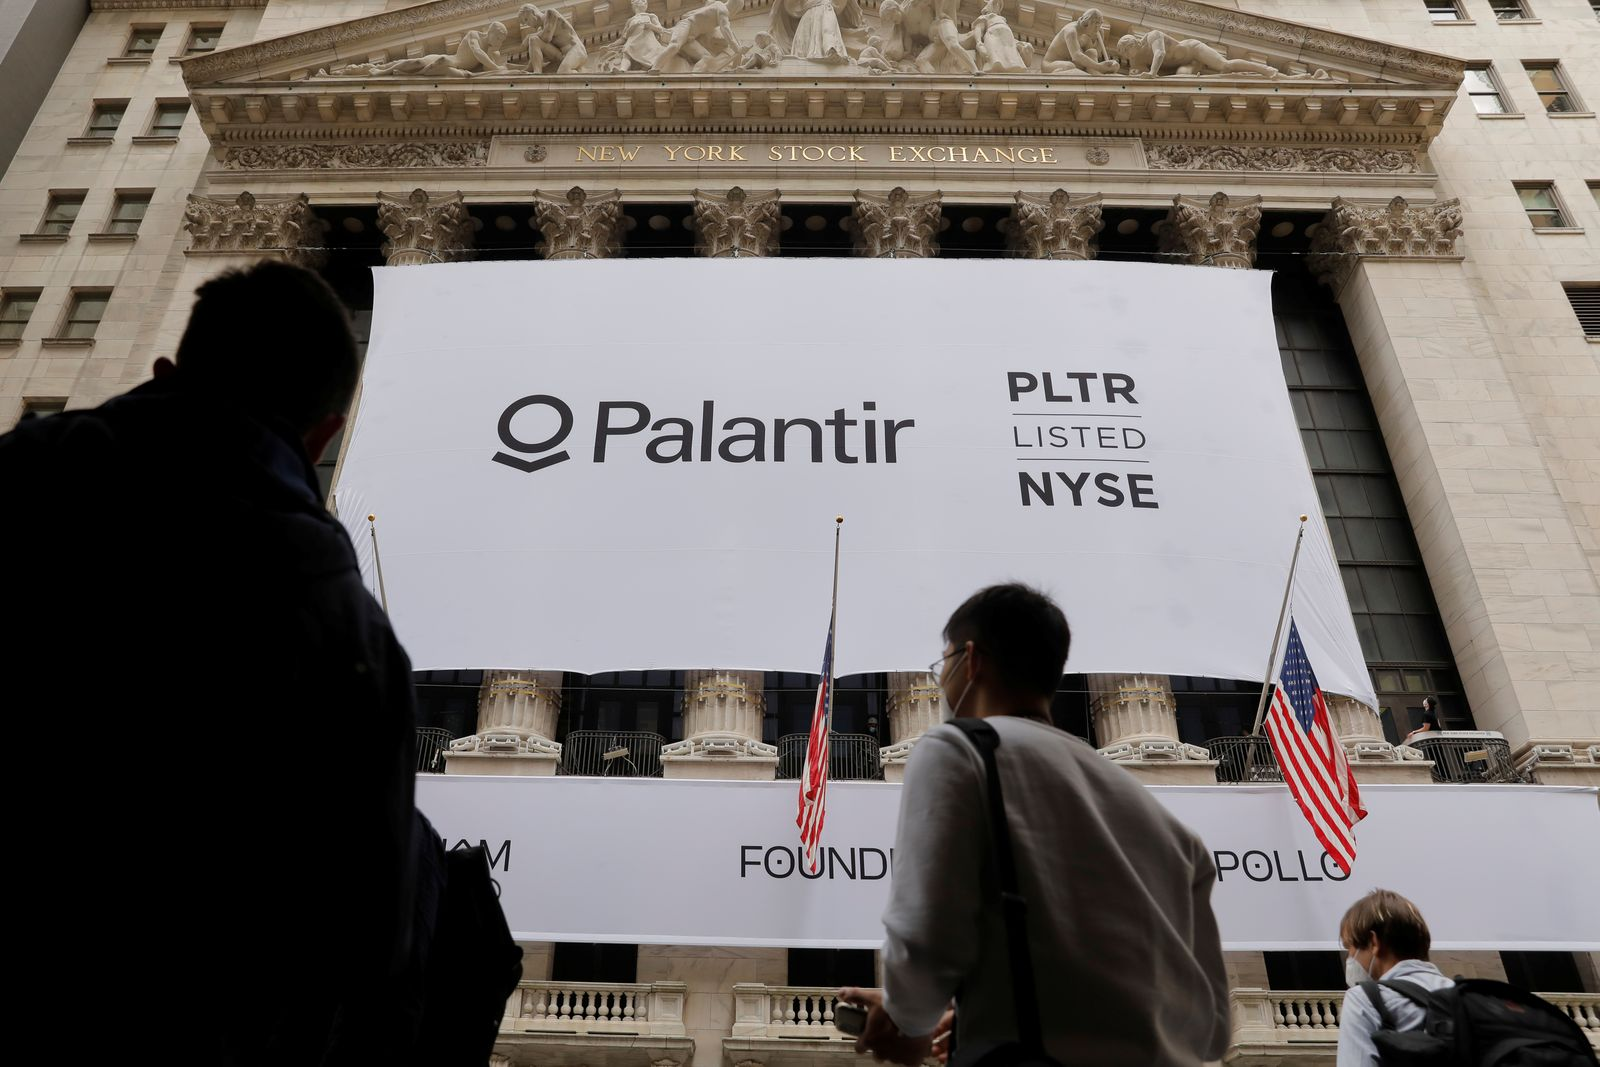 People walk by a banner featuring the logo of Palantir Technologies (PLTR) at the New York Stock Exchange (NYSE) on the day of their initial public offering (IPO) in Manhattan, New York City